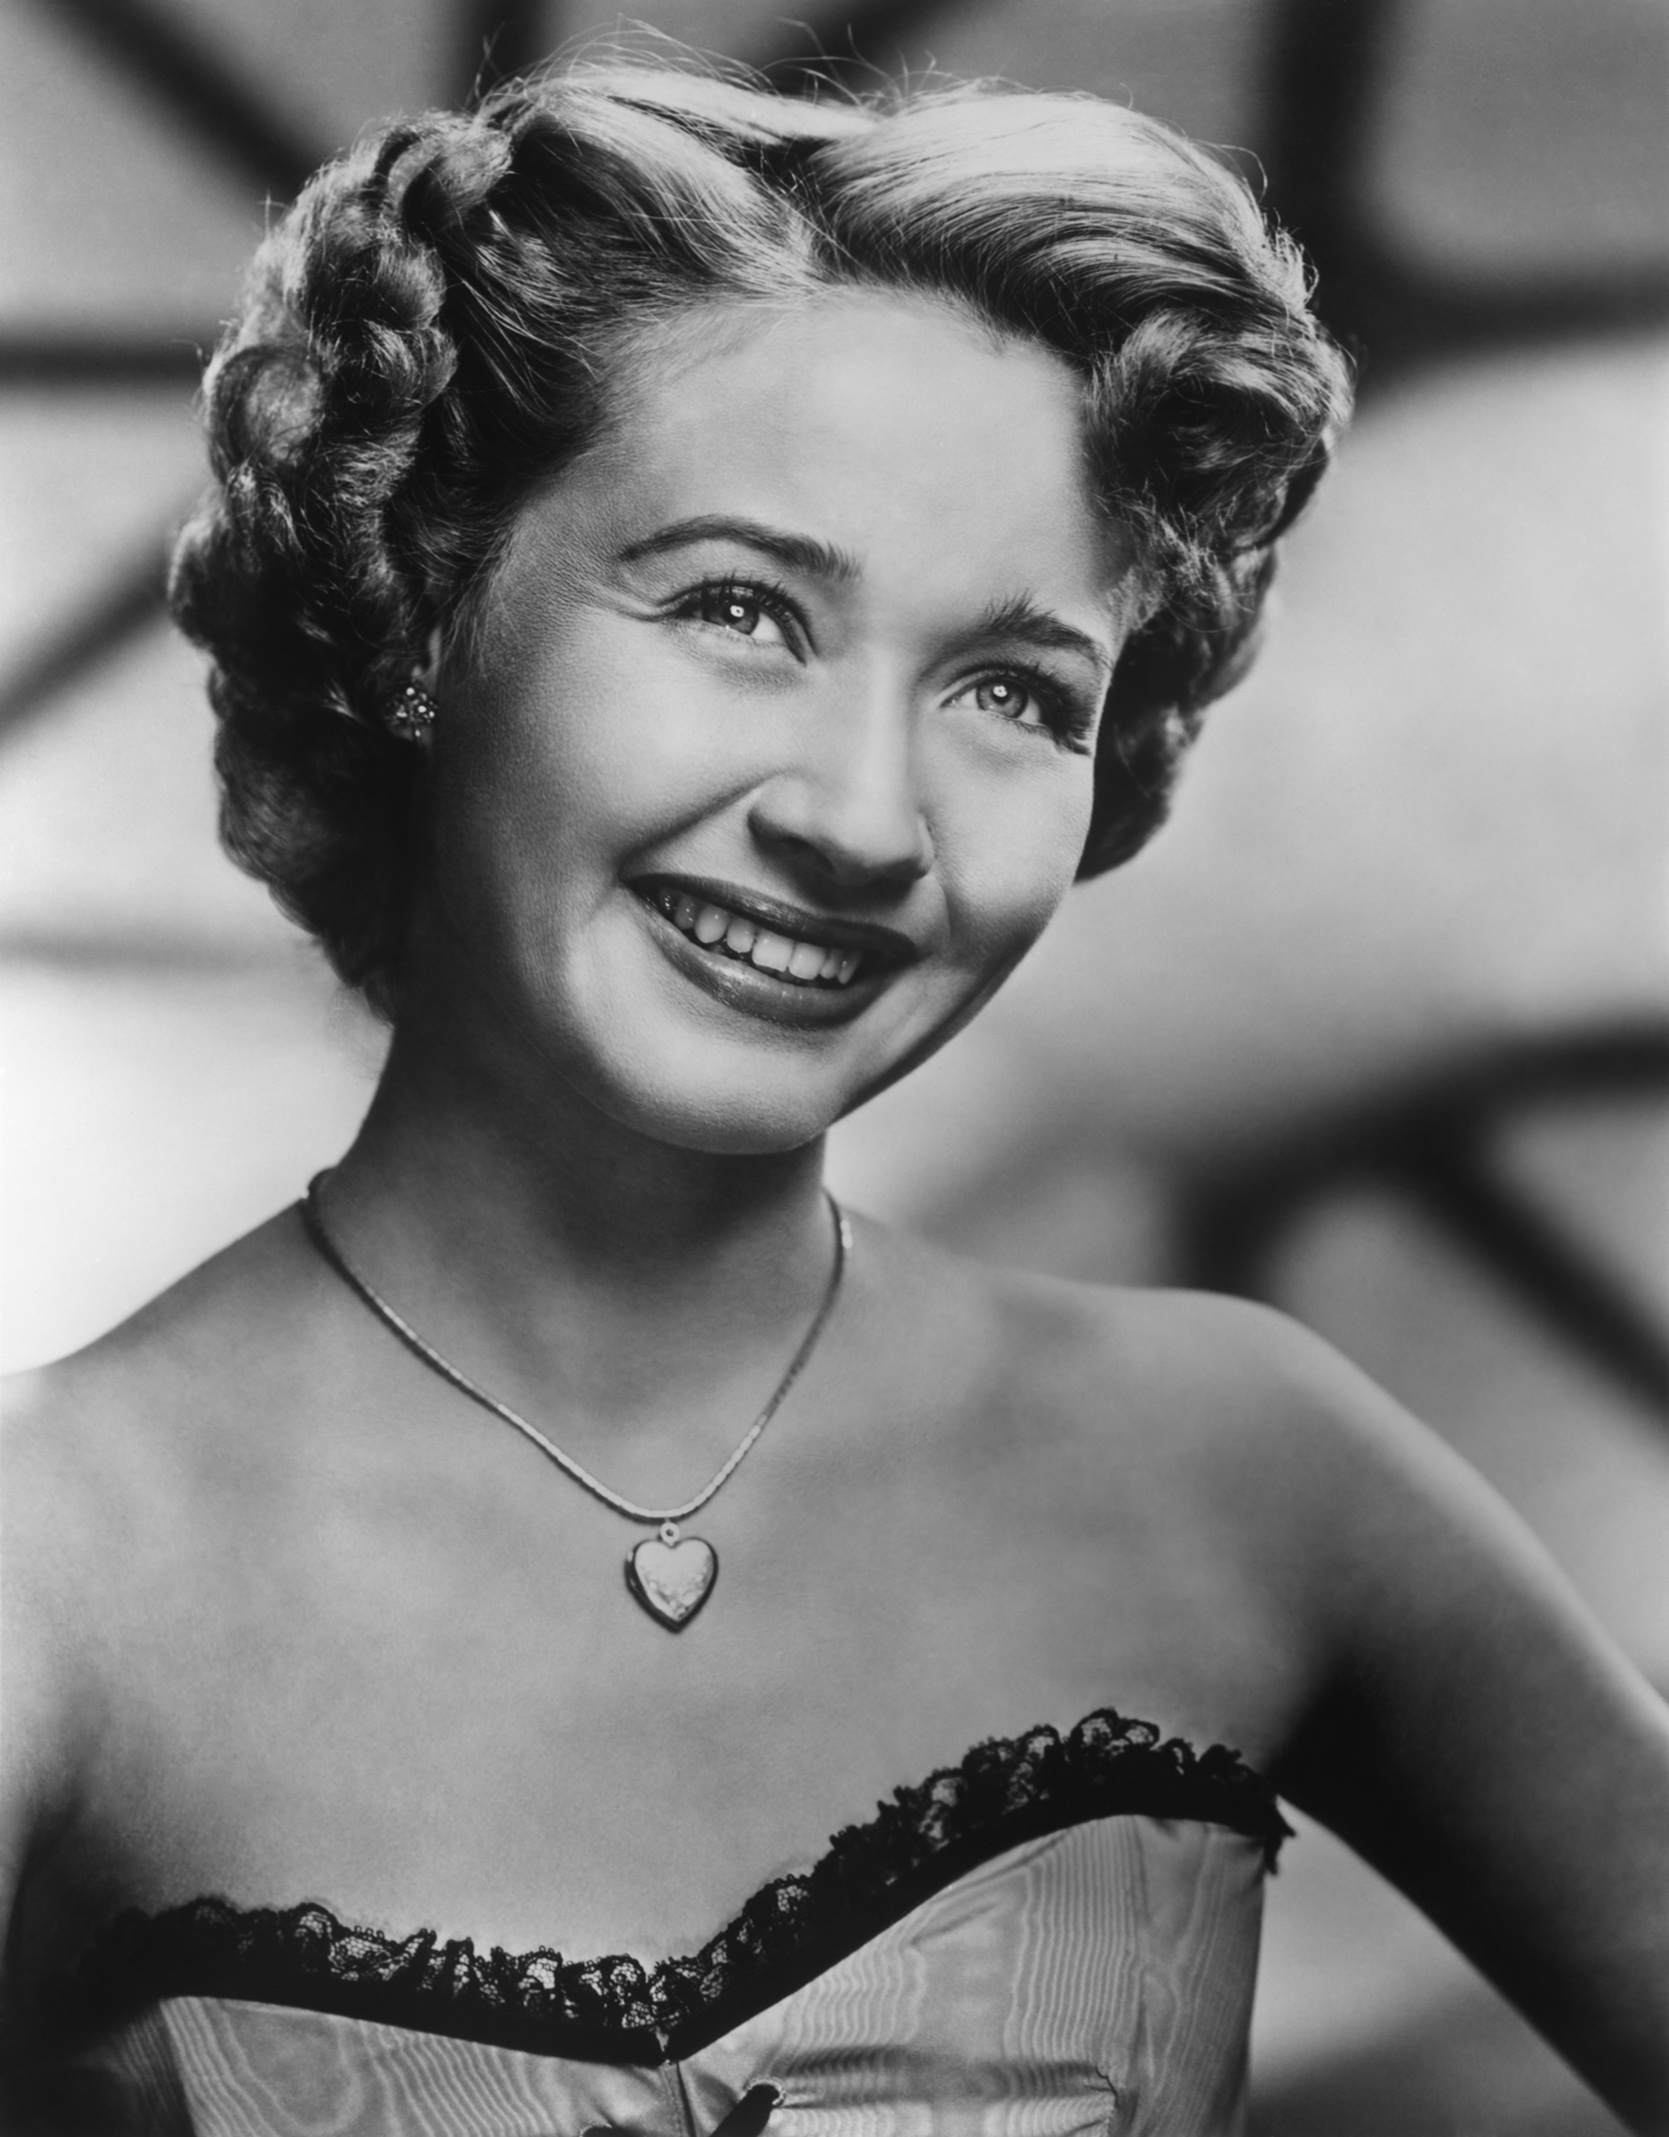 jane powell royal weddingjane powell actress, jane powell actress photos, jane powell, jane powell tutoring, jane powell facebook, jane powell goldsmiths, jane powell royal wedding, jane powell imdb, jane powell net worth, jane powell and dickie moore, jane powell weight loss, jane powell calm, jane powell youtube, jane powell singing, jane powell measurements, jane powell tutor